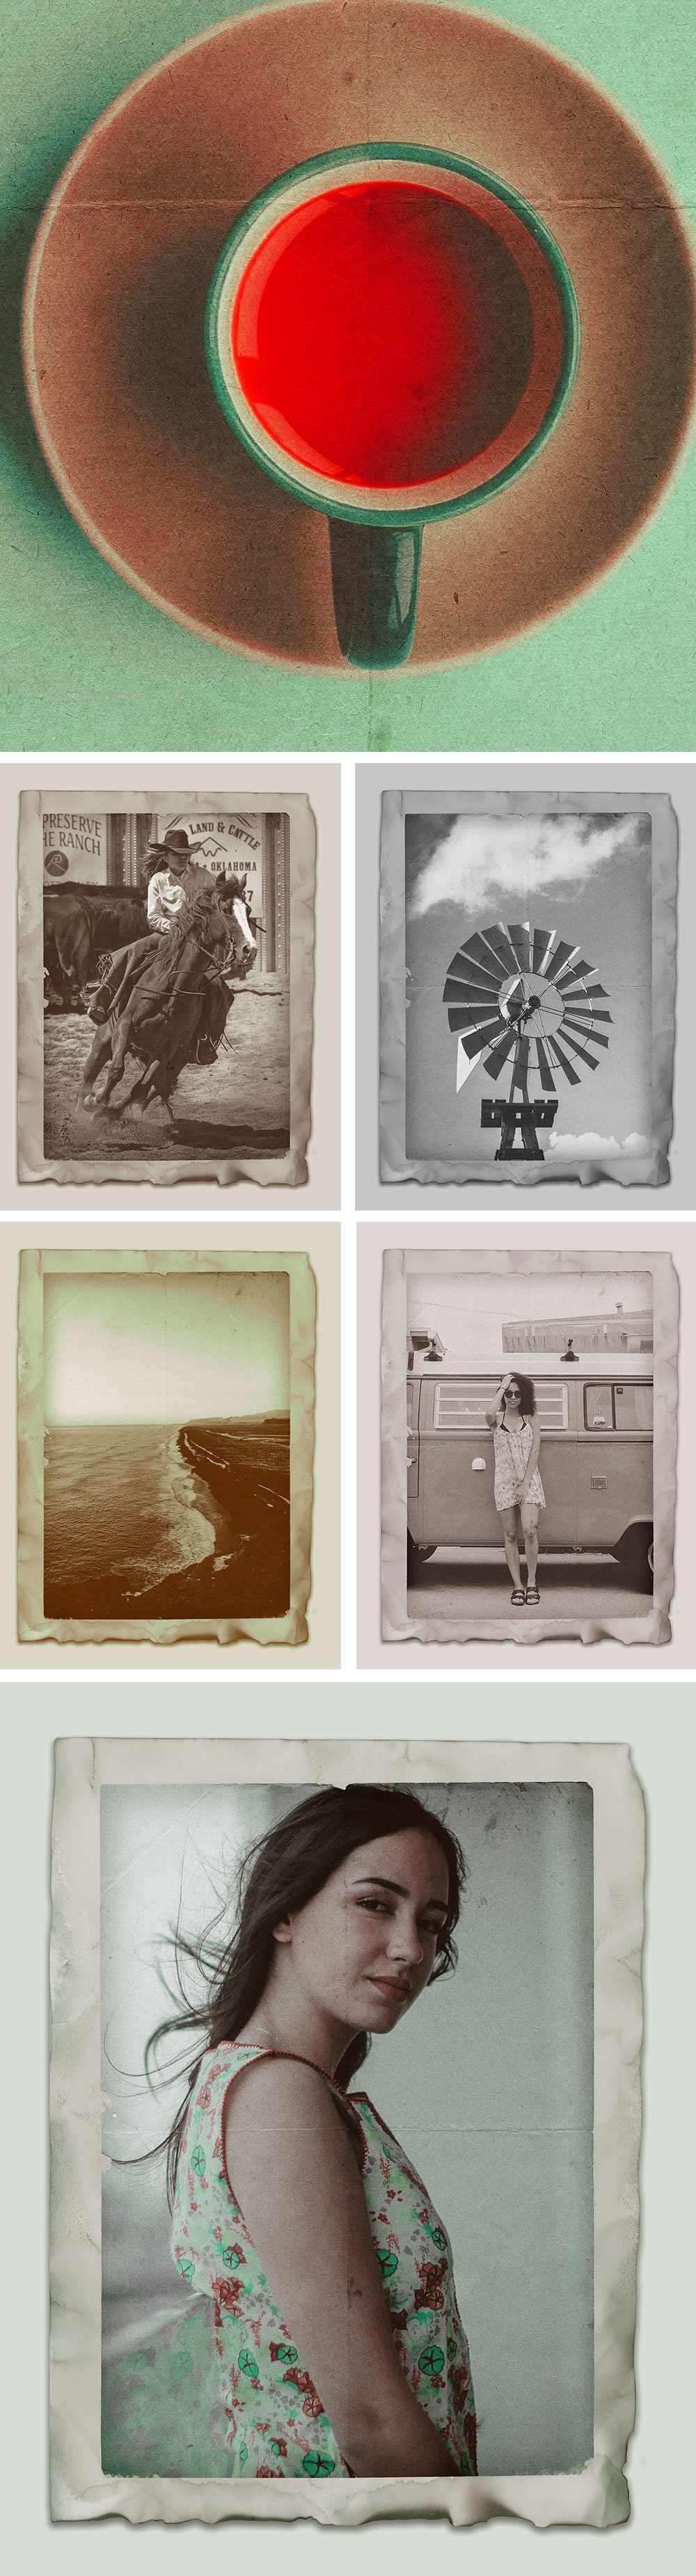 Creative Free Vintage Photo Effects PSD